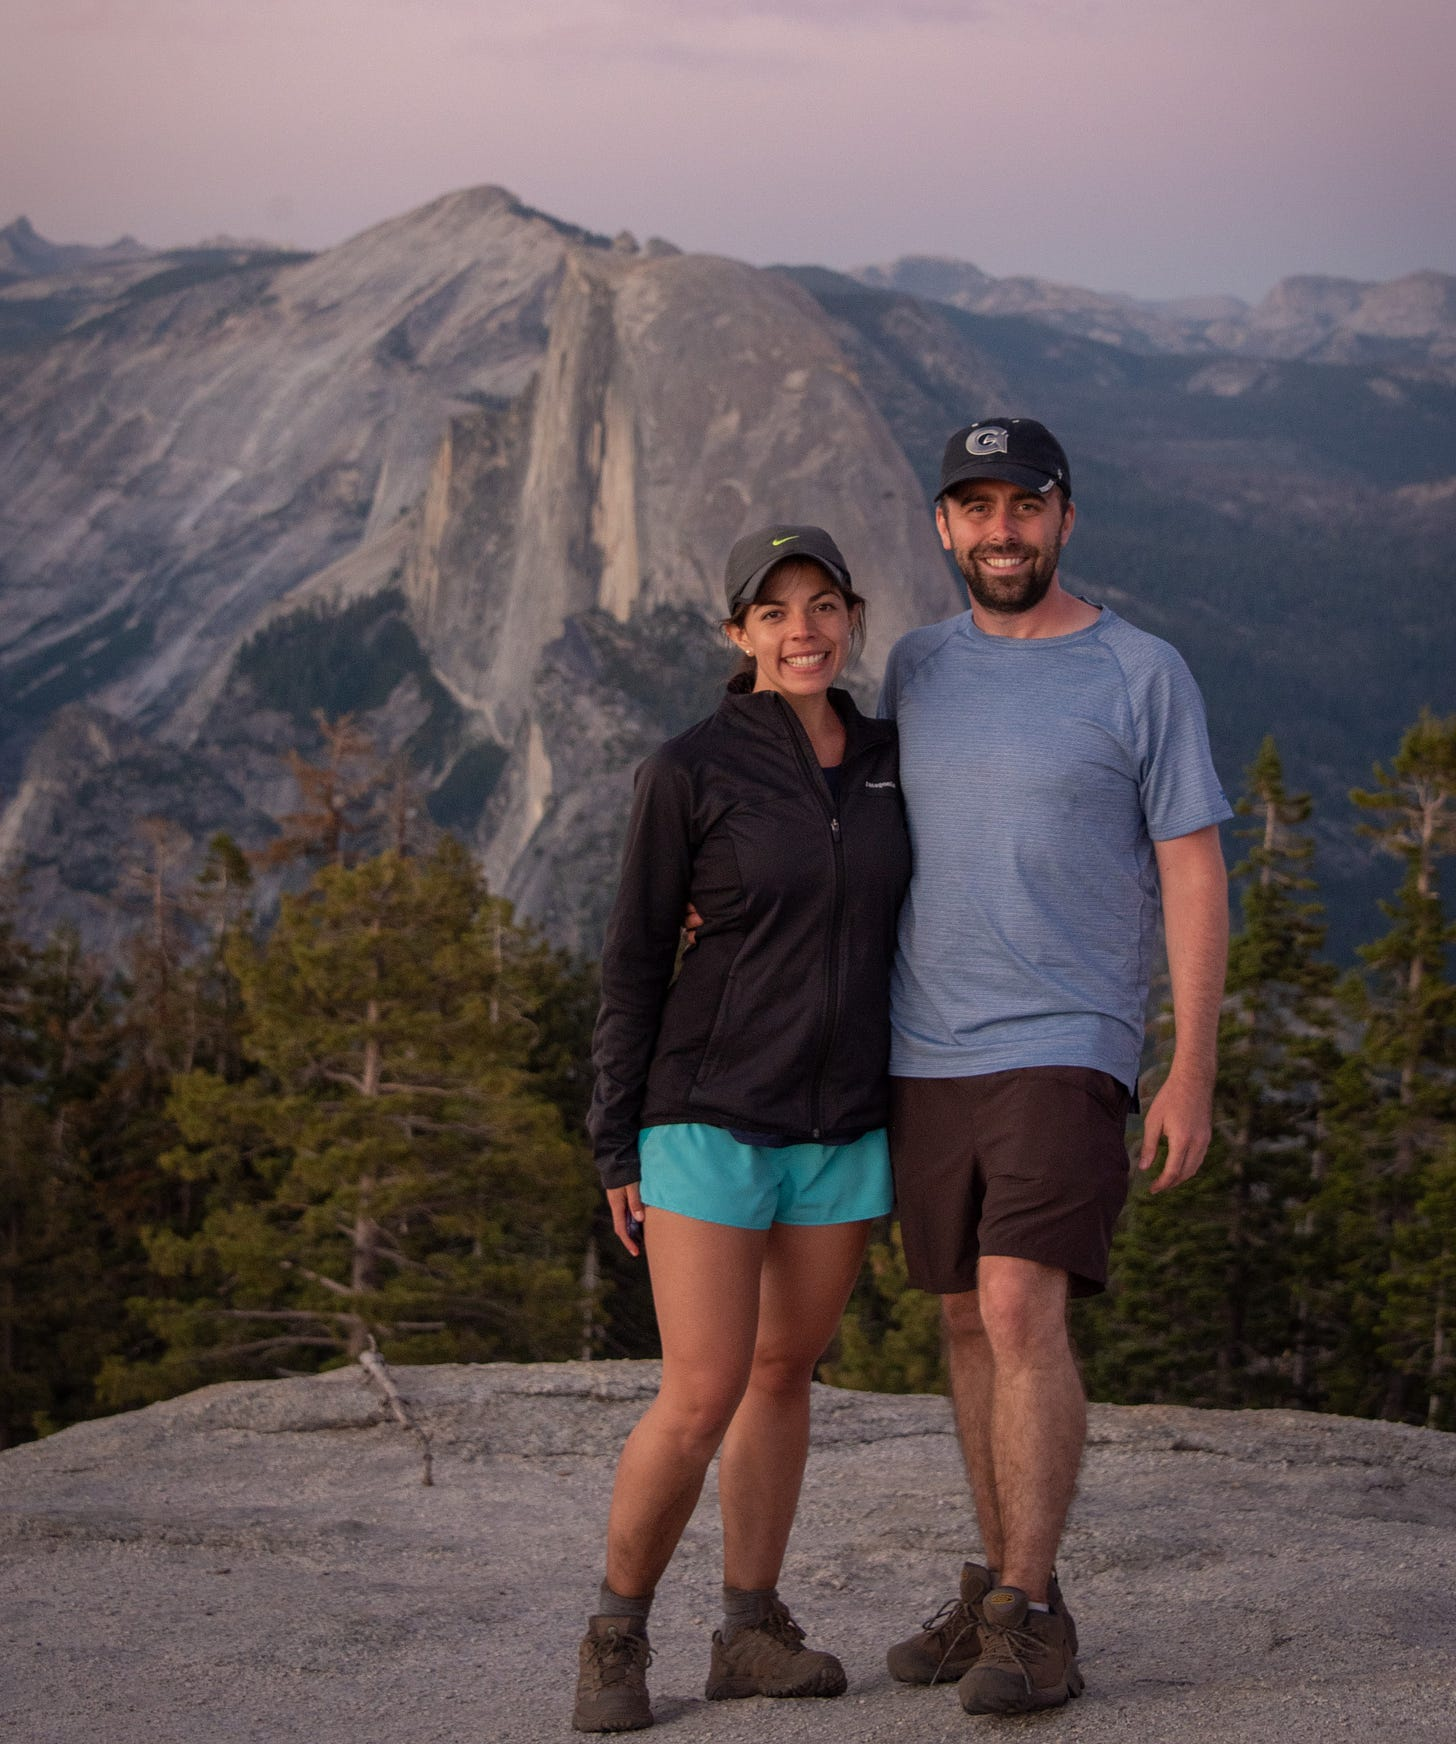 Jeff and fiancee hiking, travel mentors